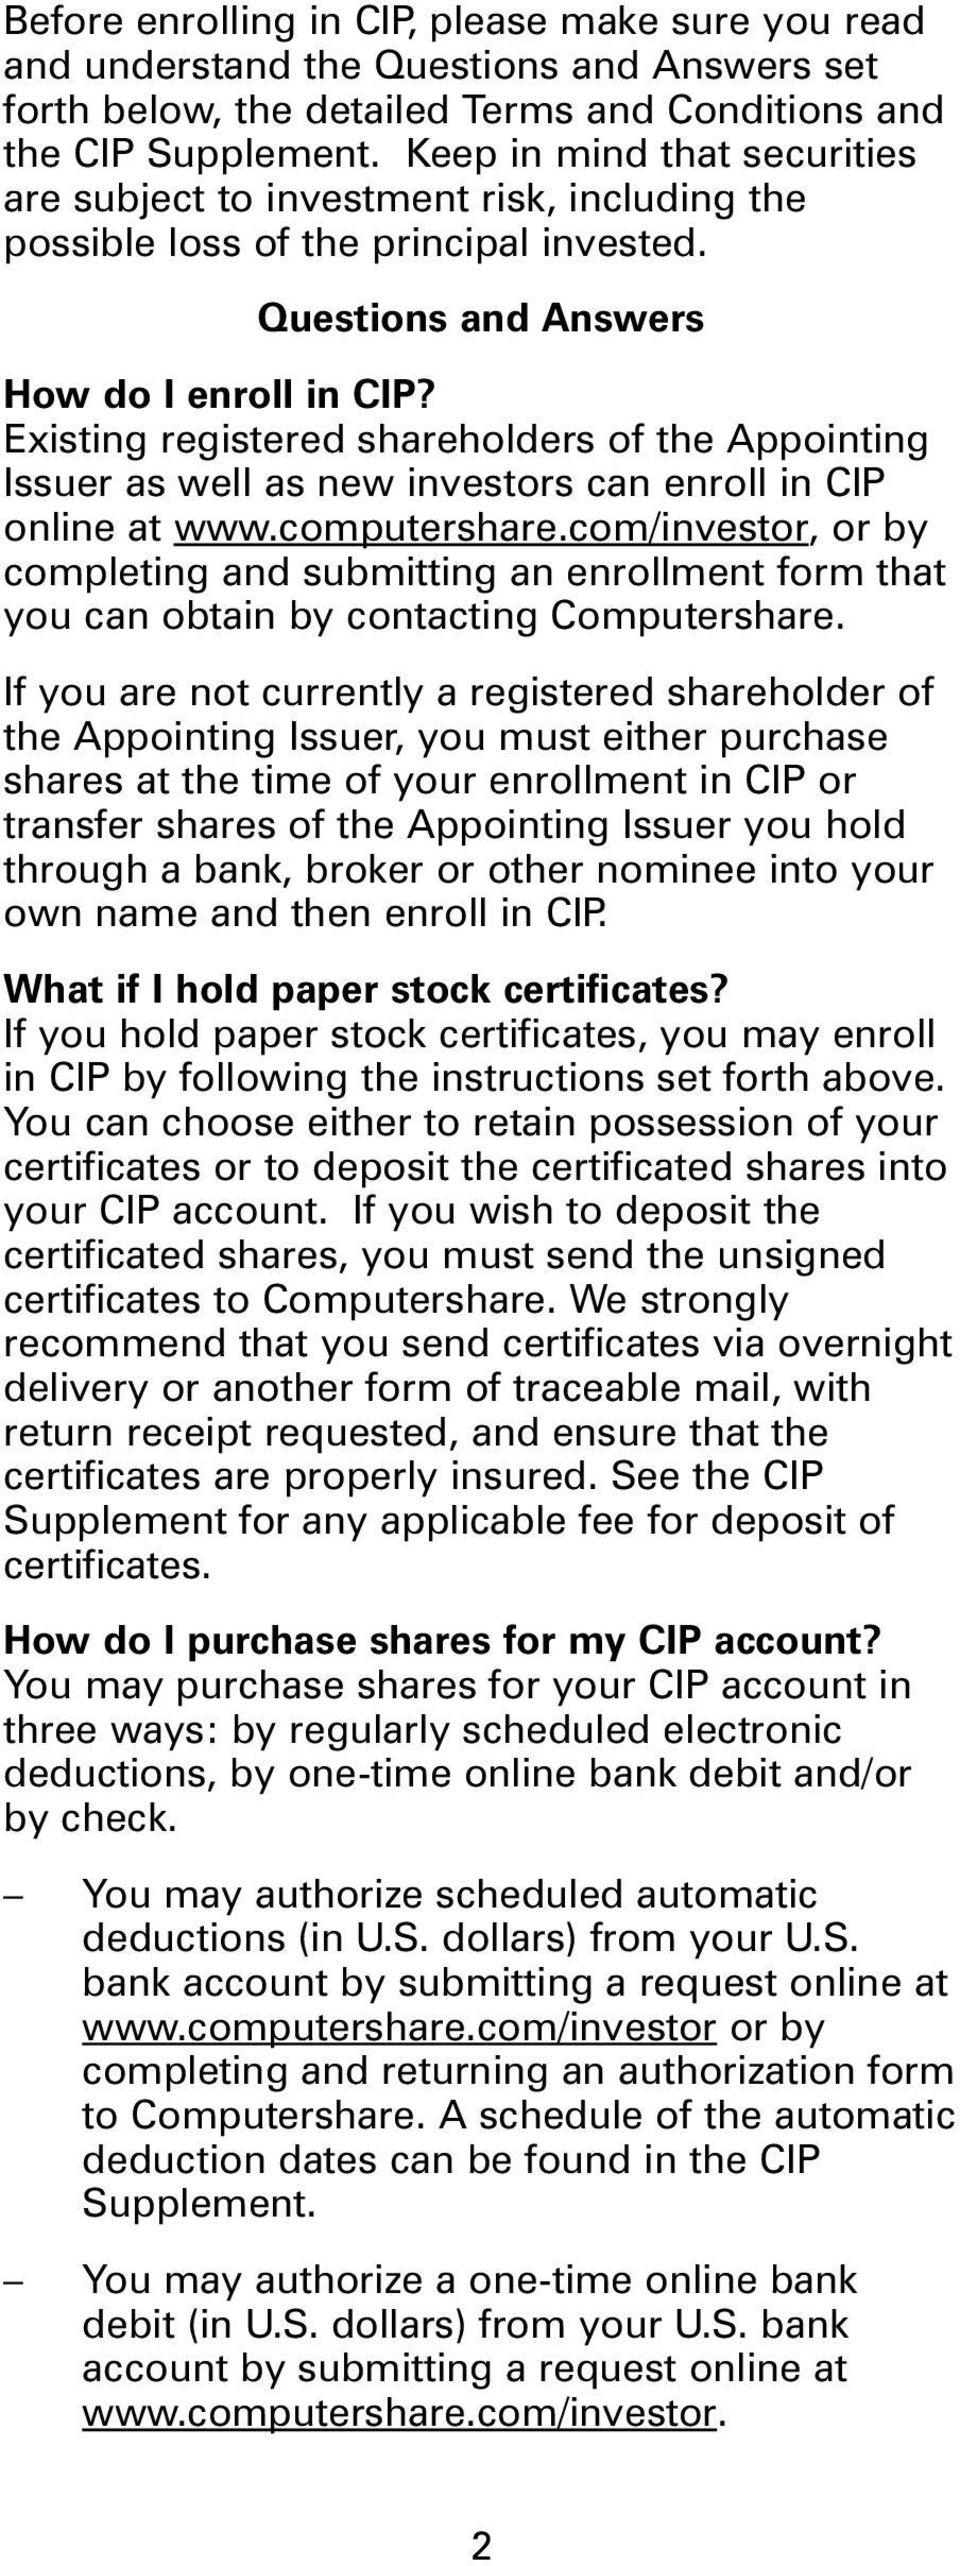 Existing registered shareholders of the Appointing Issuer as well as new investors can enroll in CIP online at www.computershare.